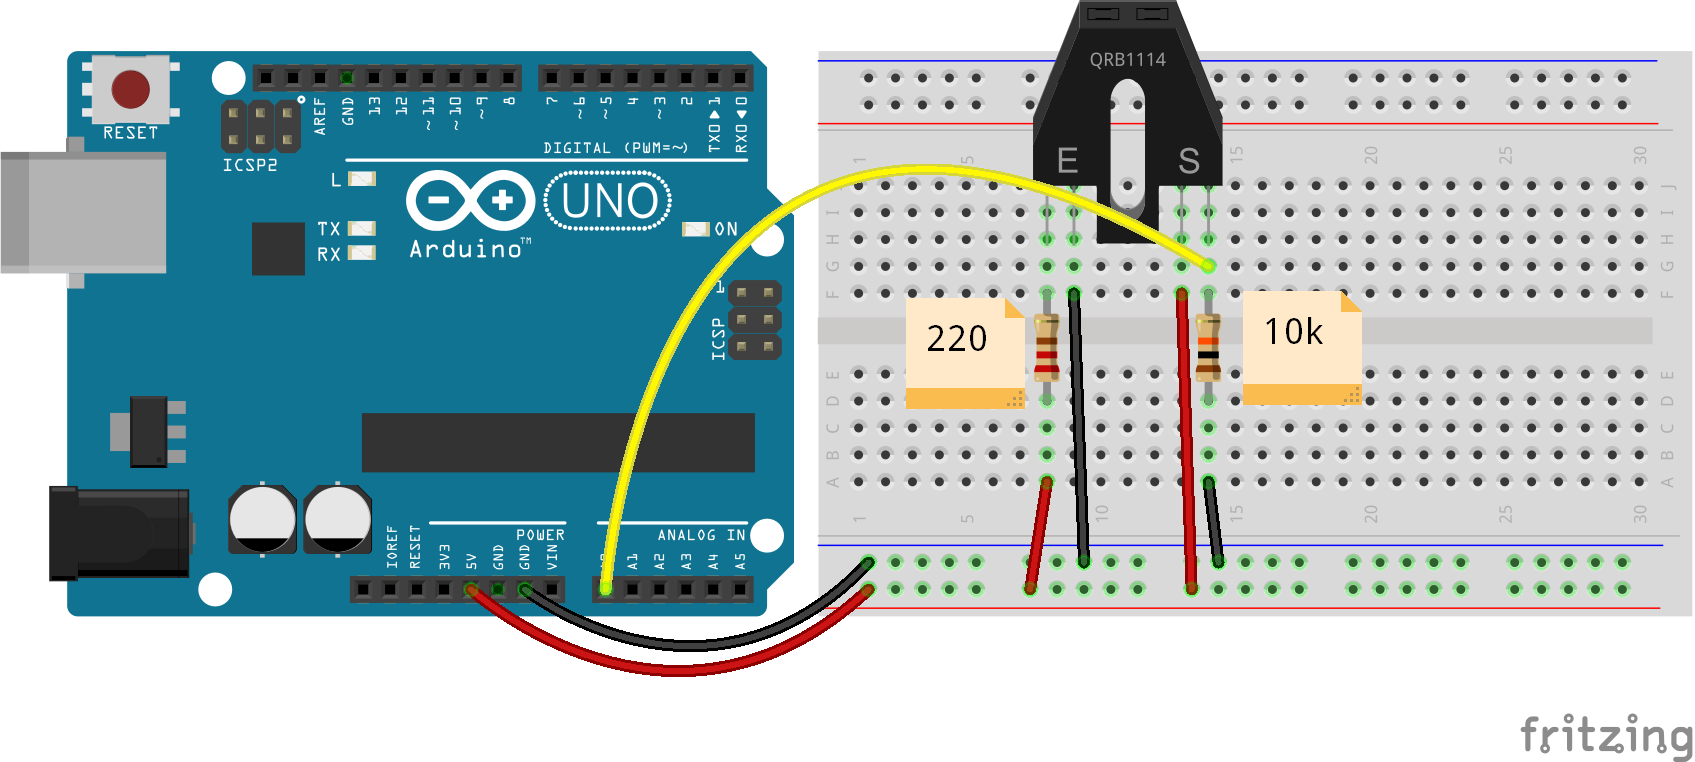 Arduino QRB1114.png